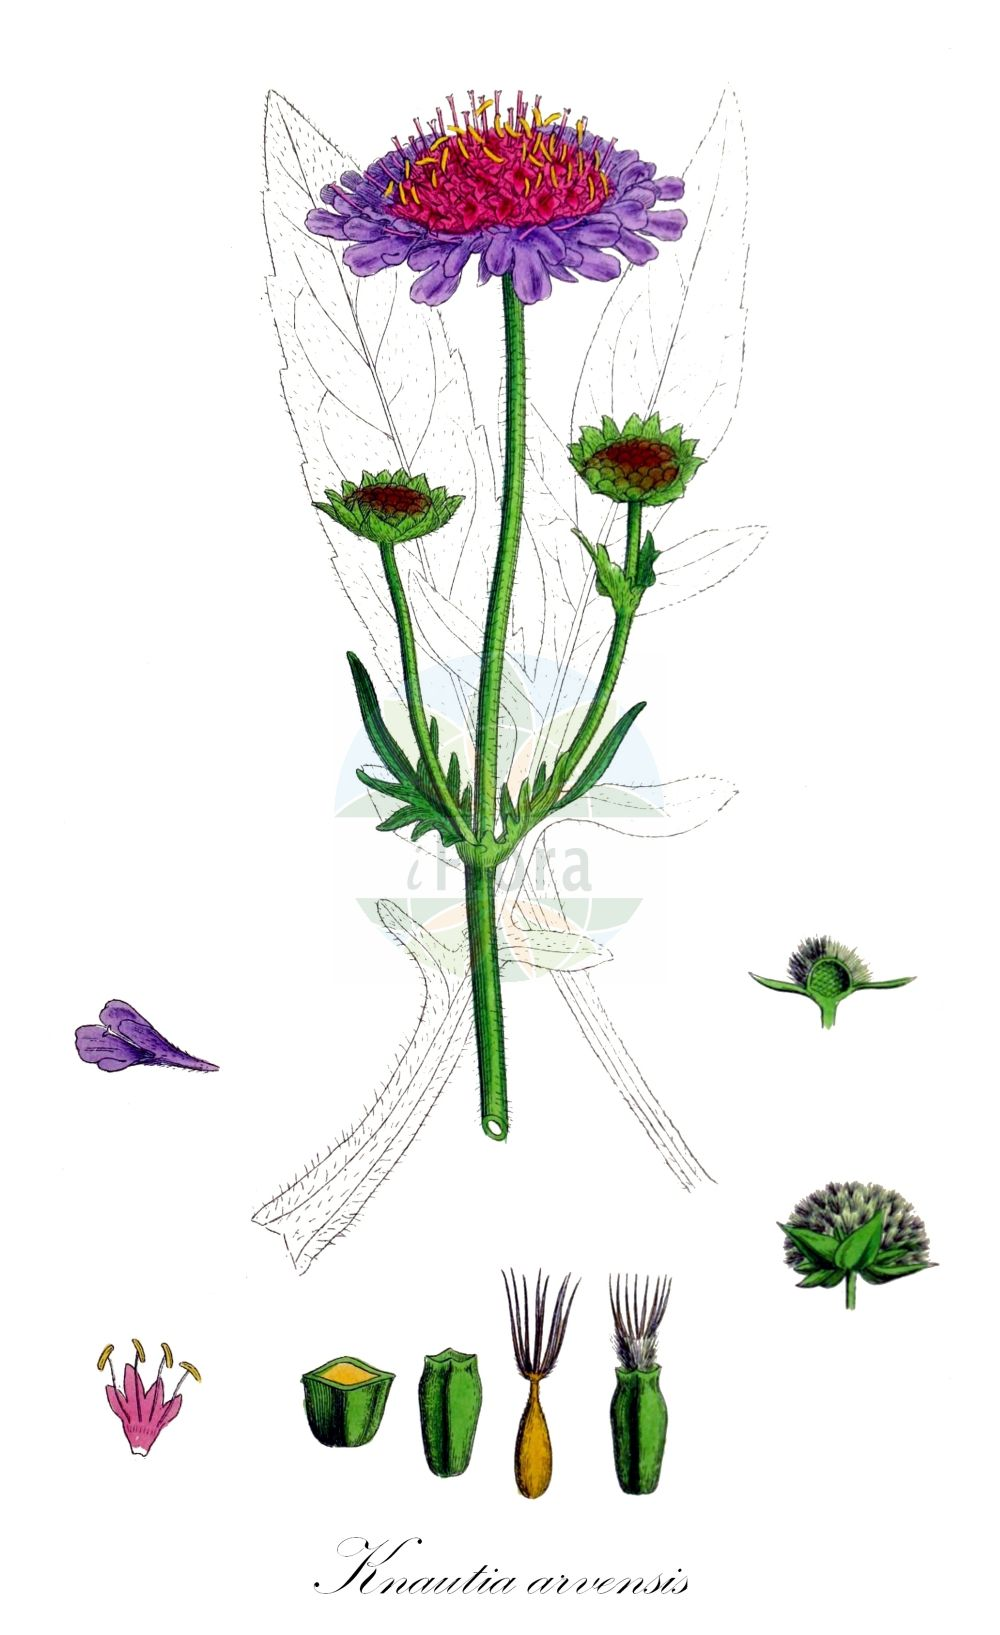 Historische Abbildung von Knautia arvensis (Wiesen-Witwenblume - Field Scabious). Das Bild zeigt Blatt, Bluete, Frucht und Same. ---- Historical Drawing of Knautia arvensis (Wiesen-Witwenblume - Field Scabious).The image is showing leaf, flower, fruit and seed.(Knautia arvensis,Wiesen-Witwenblume,Field Scabious,Knautia avernica,Knautia boderei,Knautia borderei,Knautia catalaunica,Knautia timeroyi,Scabiosa arvensis,Scabiosa collina,Scabiosa dubia,Scabiosa polymorpha,Trichera arvensis,Trichera timeroyi,Kitaibels Witwenblume,Field Scabiosa,Knautia,Witwenblume,Scabious,Caprifoliaceae,Geissblattgewaechse,Honeysuckle family,Blatt,Bluete,Frucht,Same,leaf,flower,fruit,seed,Sowerby (1790-1813))